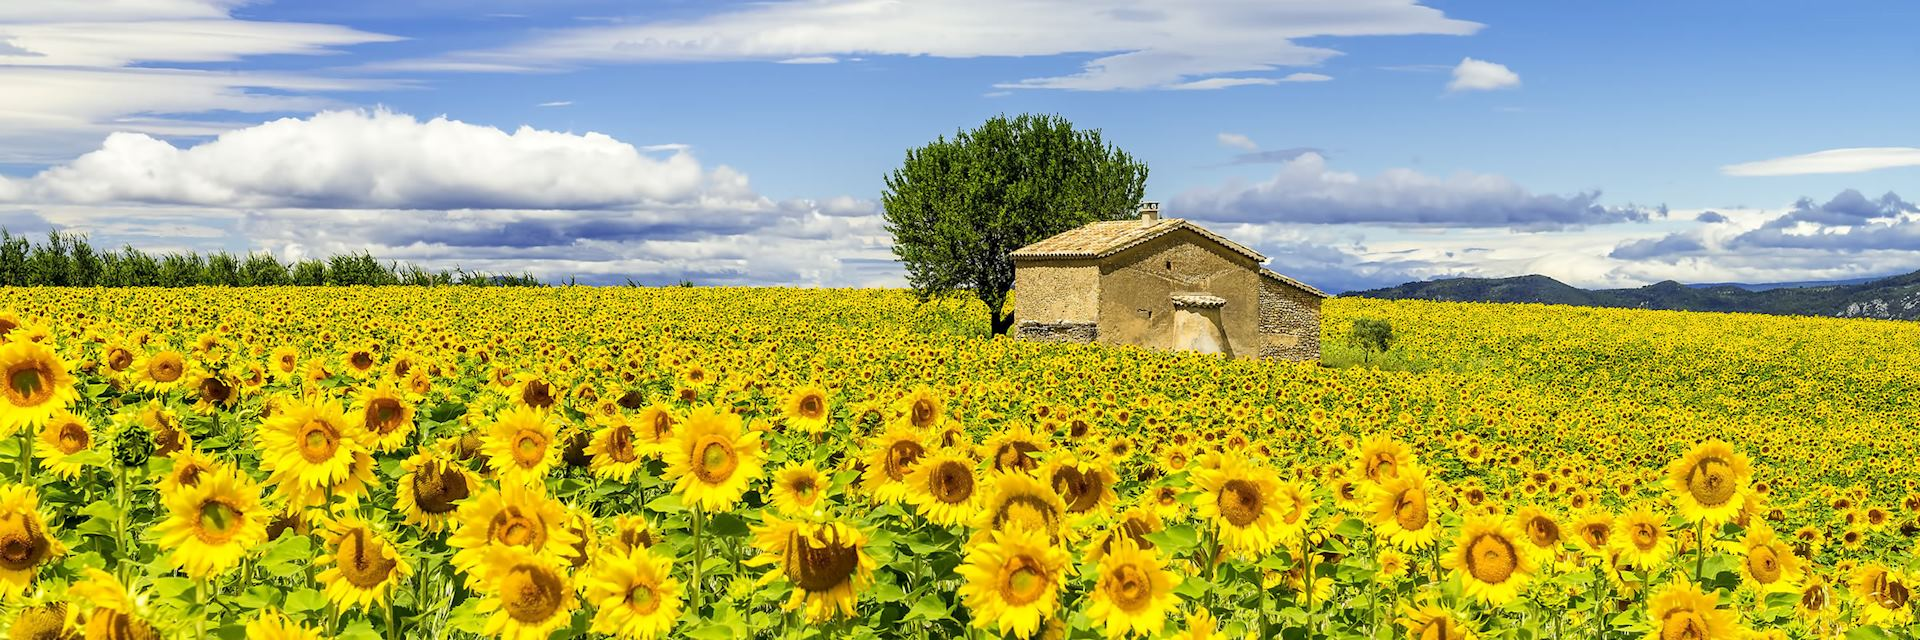 Sunflowers, Provence